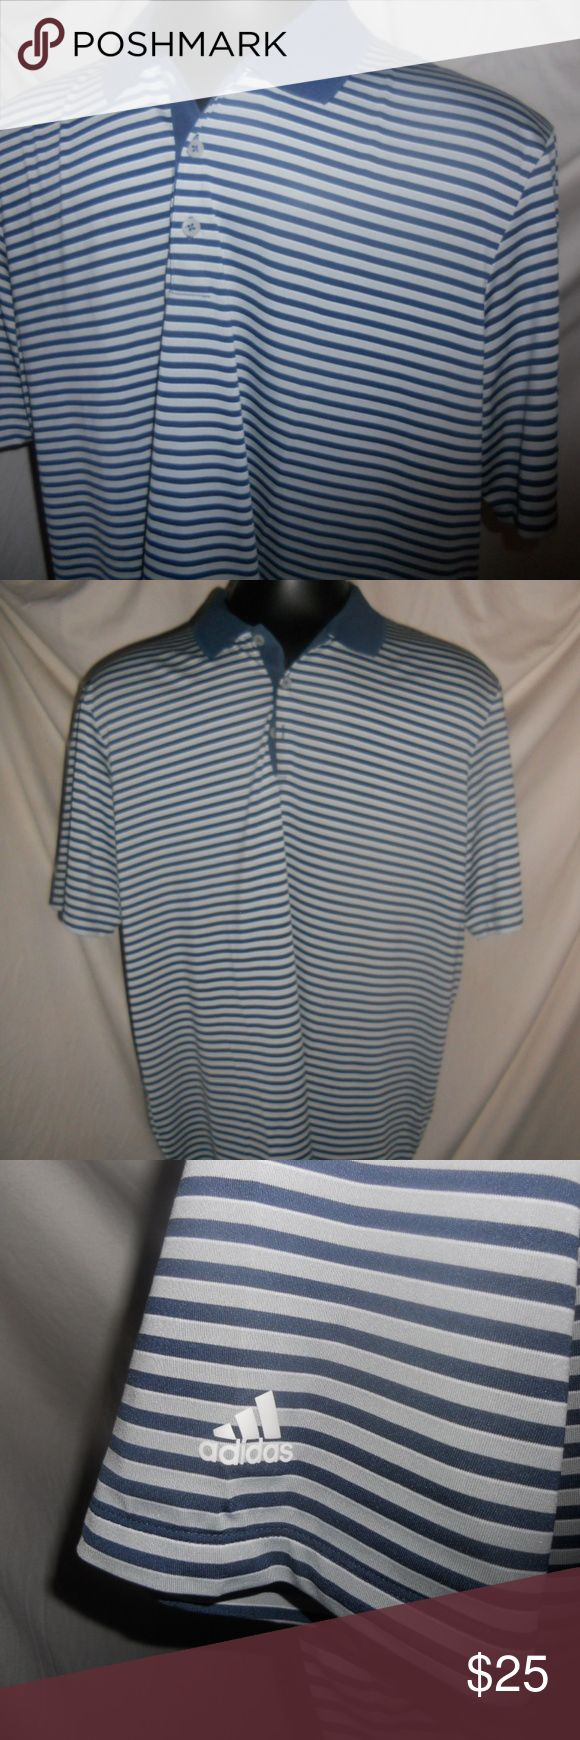 Adidas Mens Blue Striped Golf Polo Shirt Mens XXL Adidas Mens Blue Striped Golf Polo Collar Shirt Button Sports Men's XXL. Shirt is in excellent condition and ready for a new home. adidas Shirts Polos